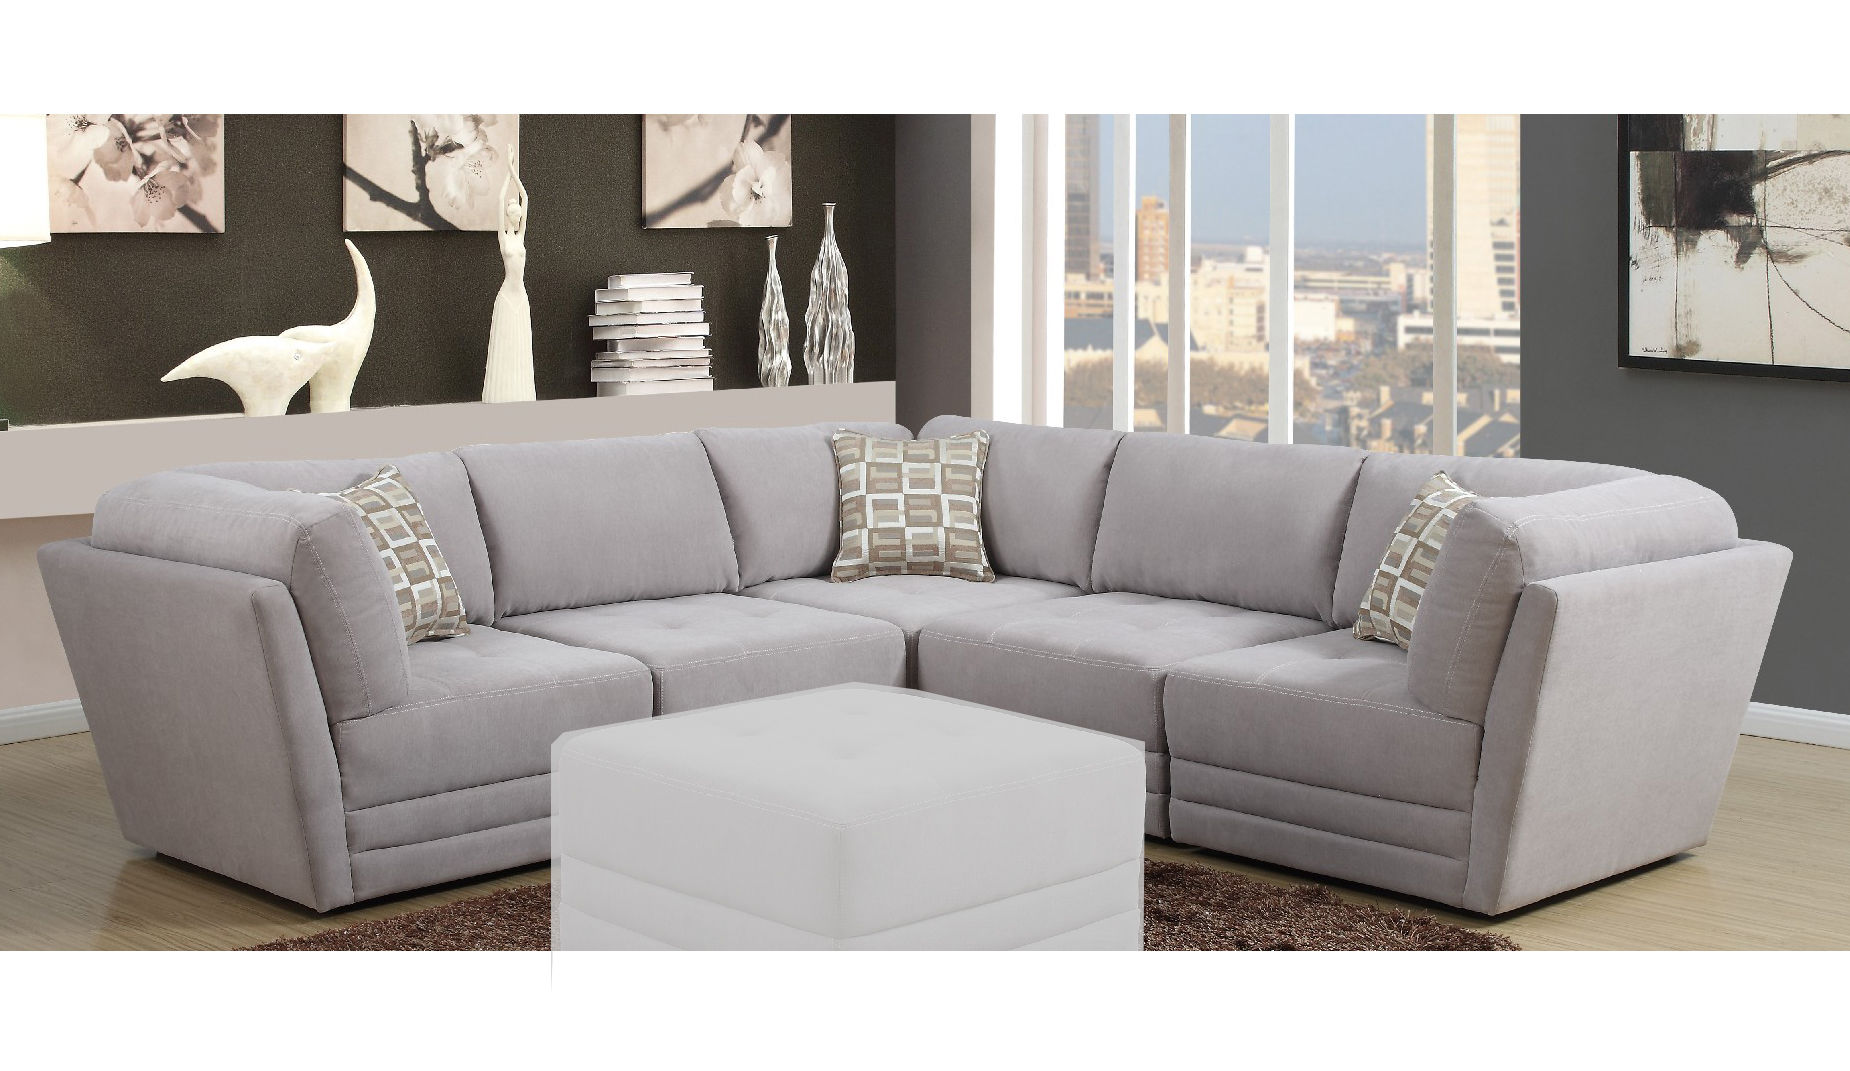 beautiful modern recliner sofa pattern-Wonderful Modern Recliner sofa Picture